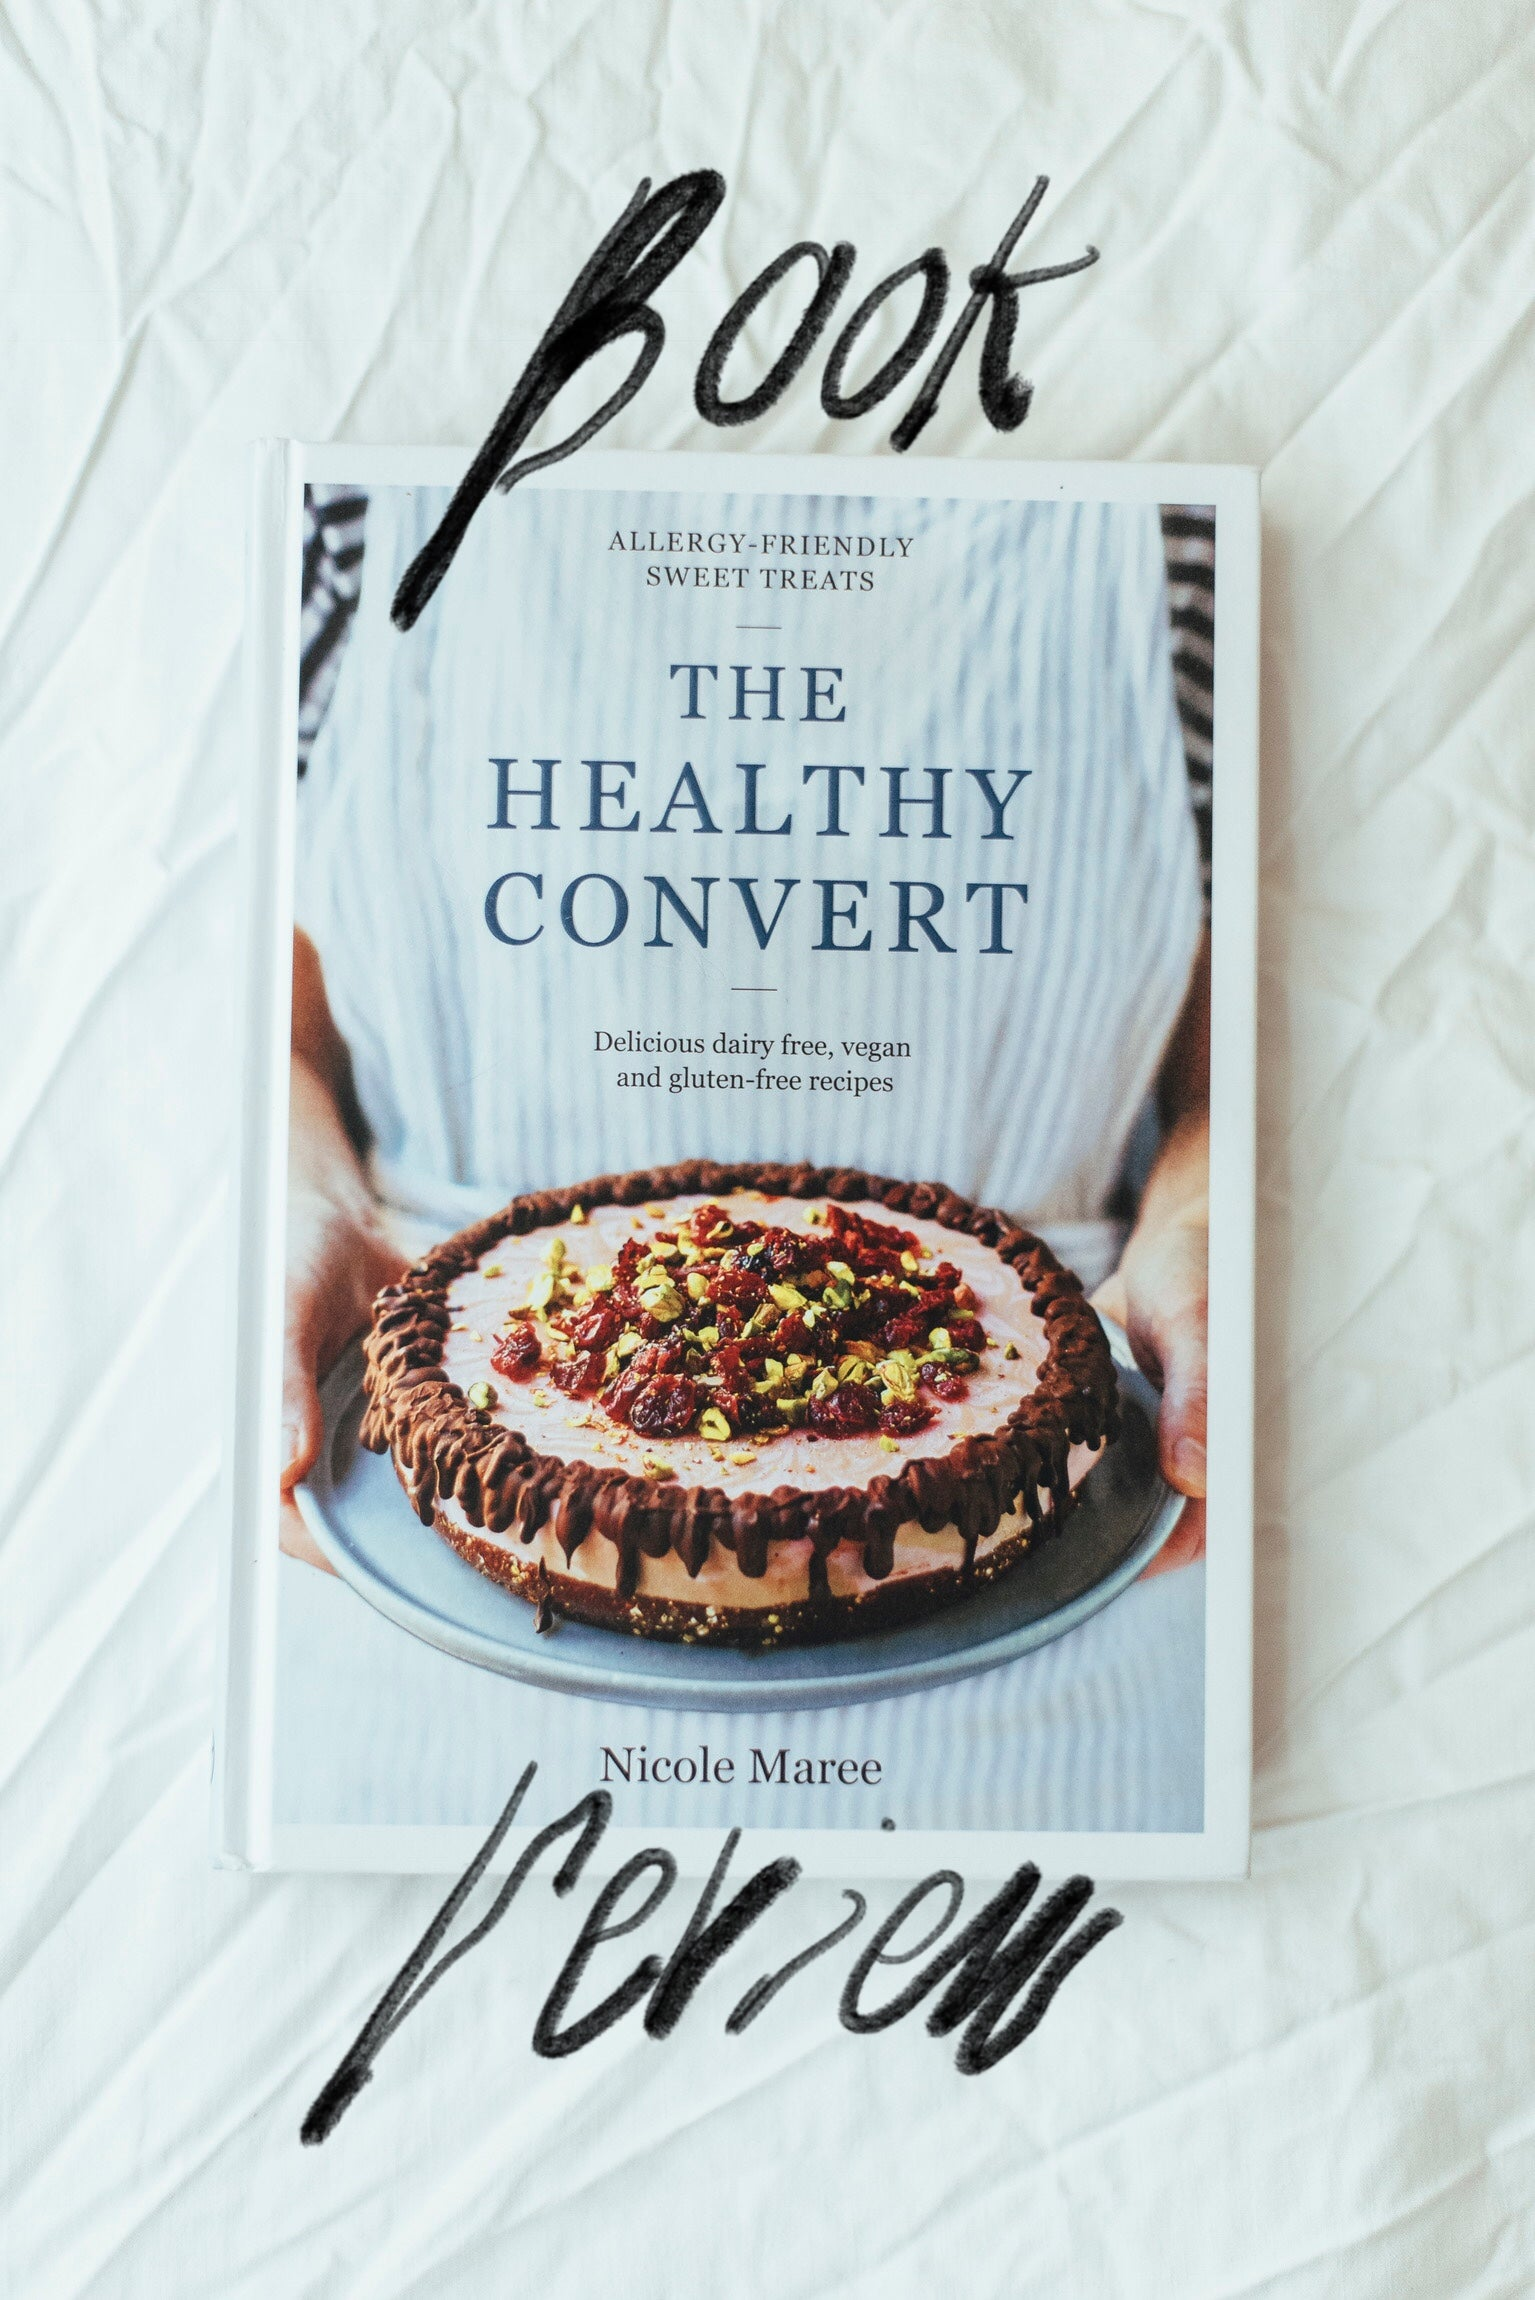 Chocolate Caramel Slice (and book review!) – chickpea magazine